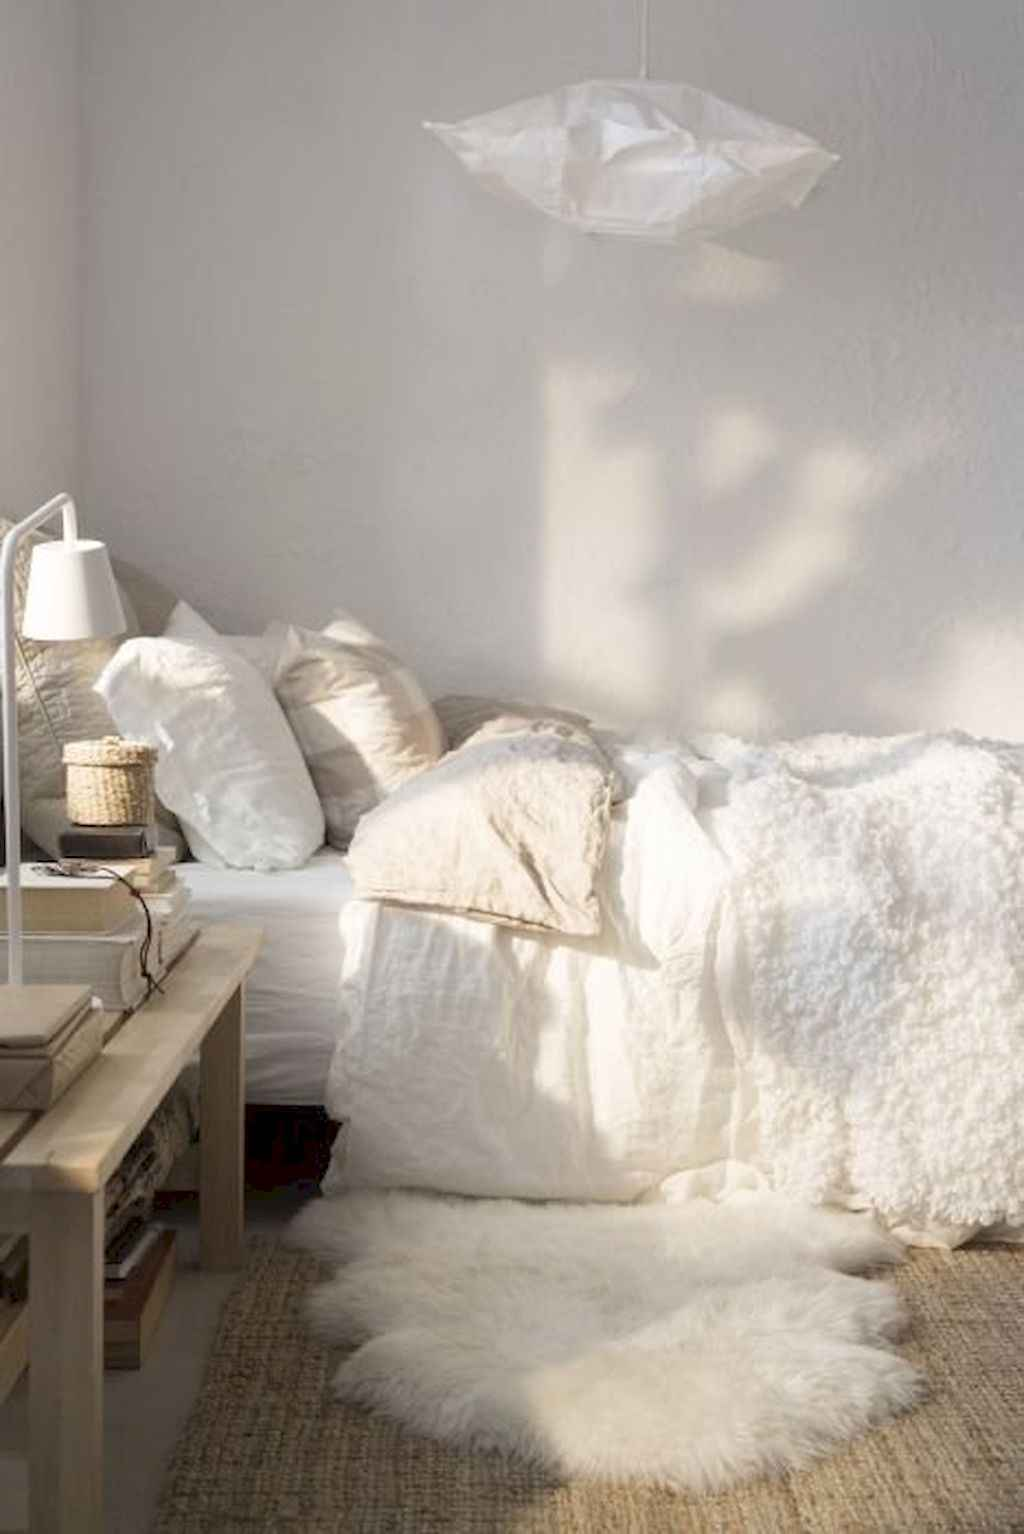 Couples first apartment decorating ideas (6)